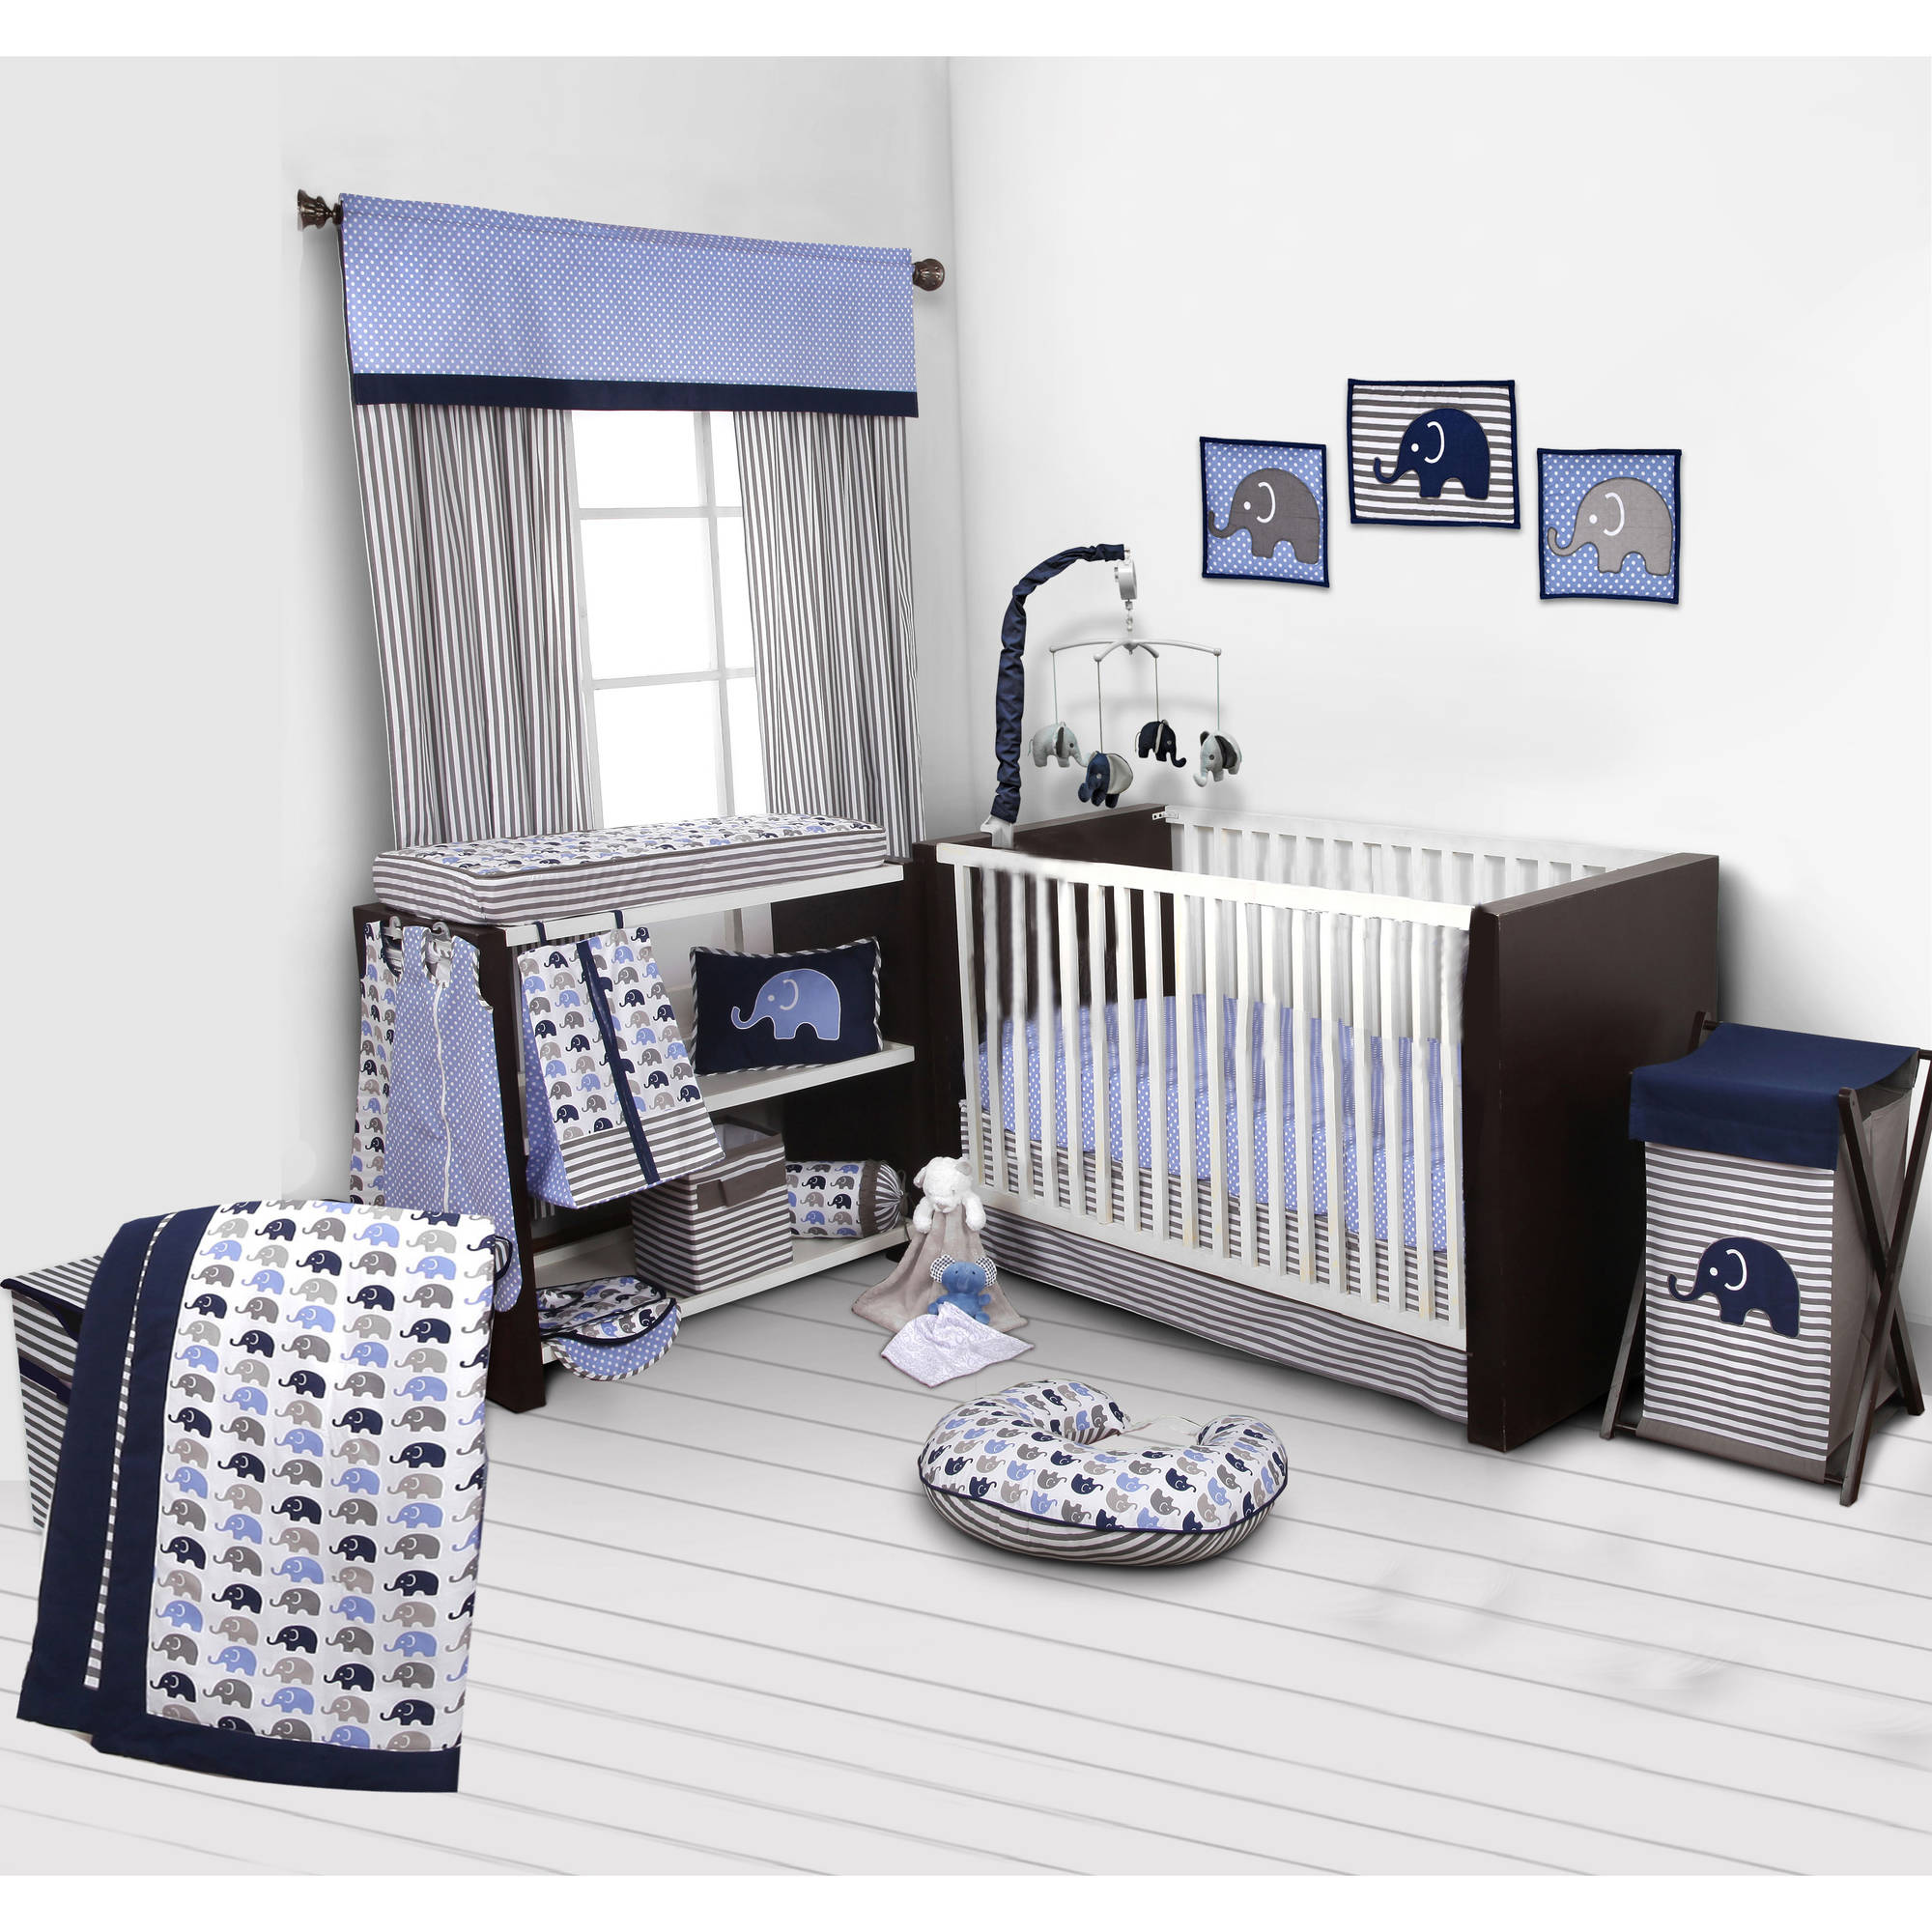 Nautical baby bedding sets - Bacati Elephants Blue Gray 10 Piece Nursery In A Bag Crib Bedding Set